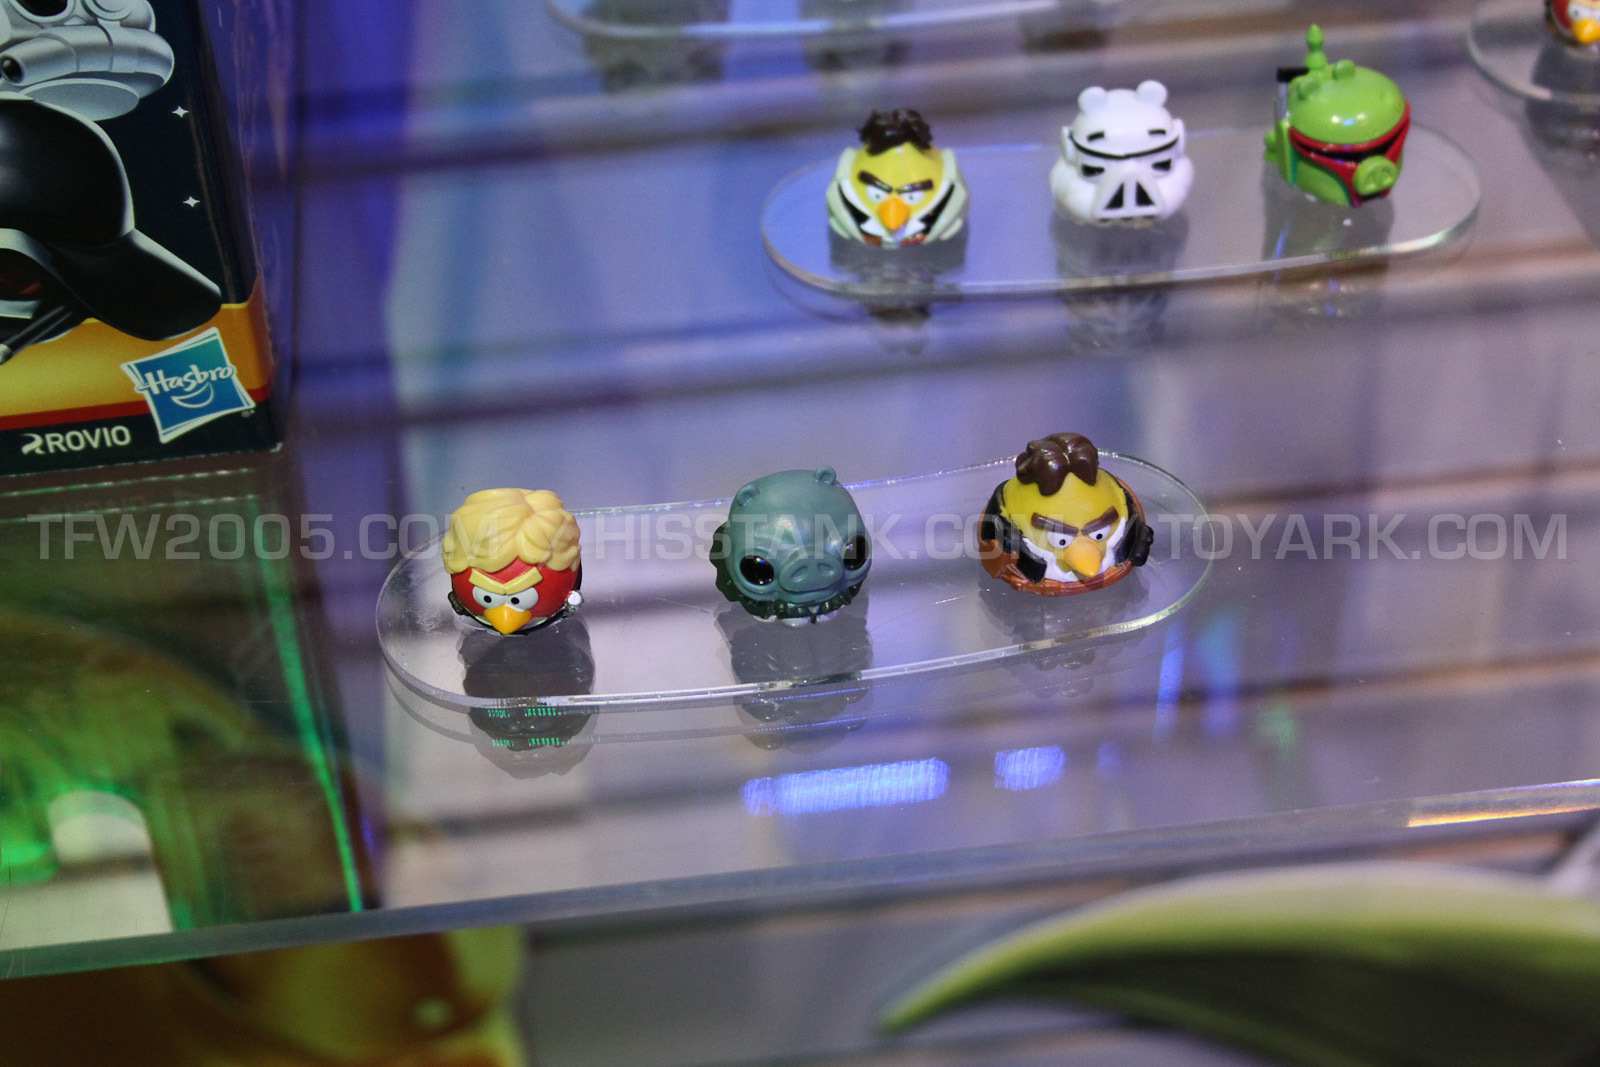 angry birds star wars toys from toy fair 2013 the toyark news. Black Bedroom Furniture Sets. Home Design Ideas